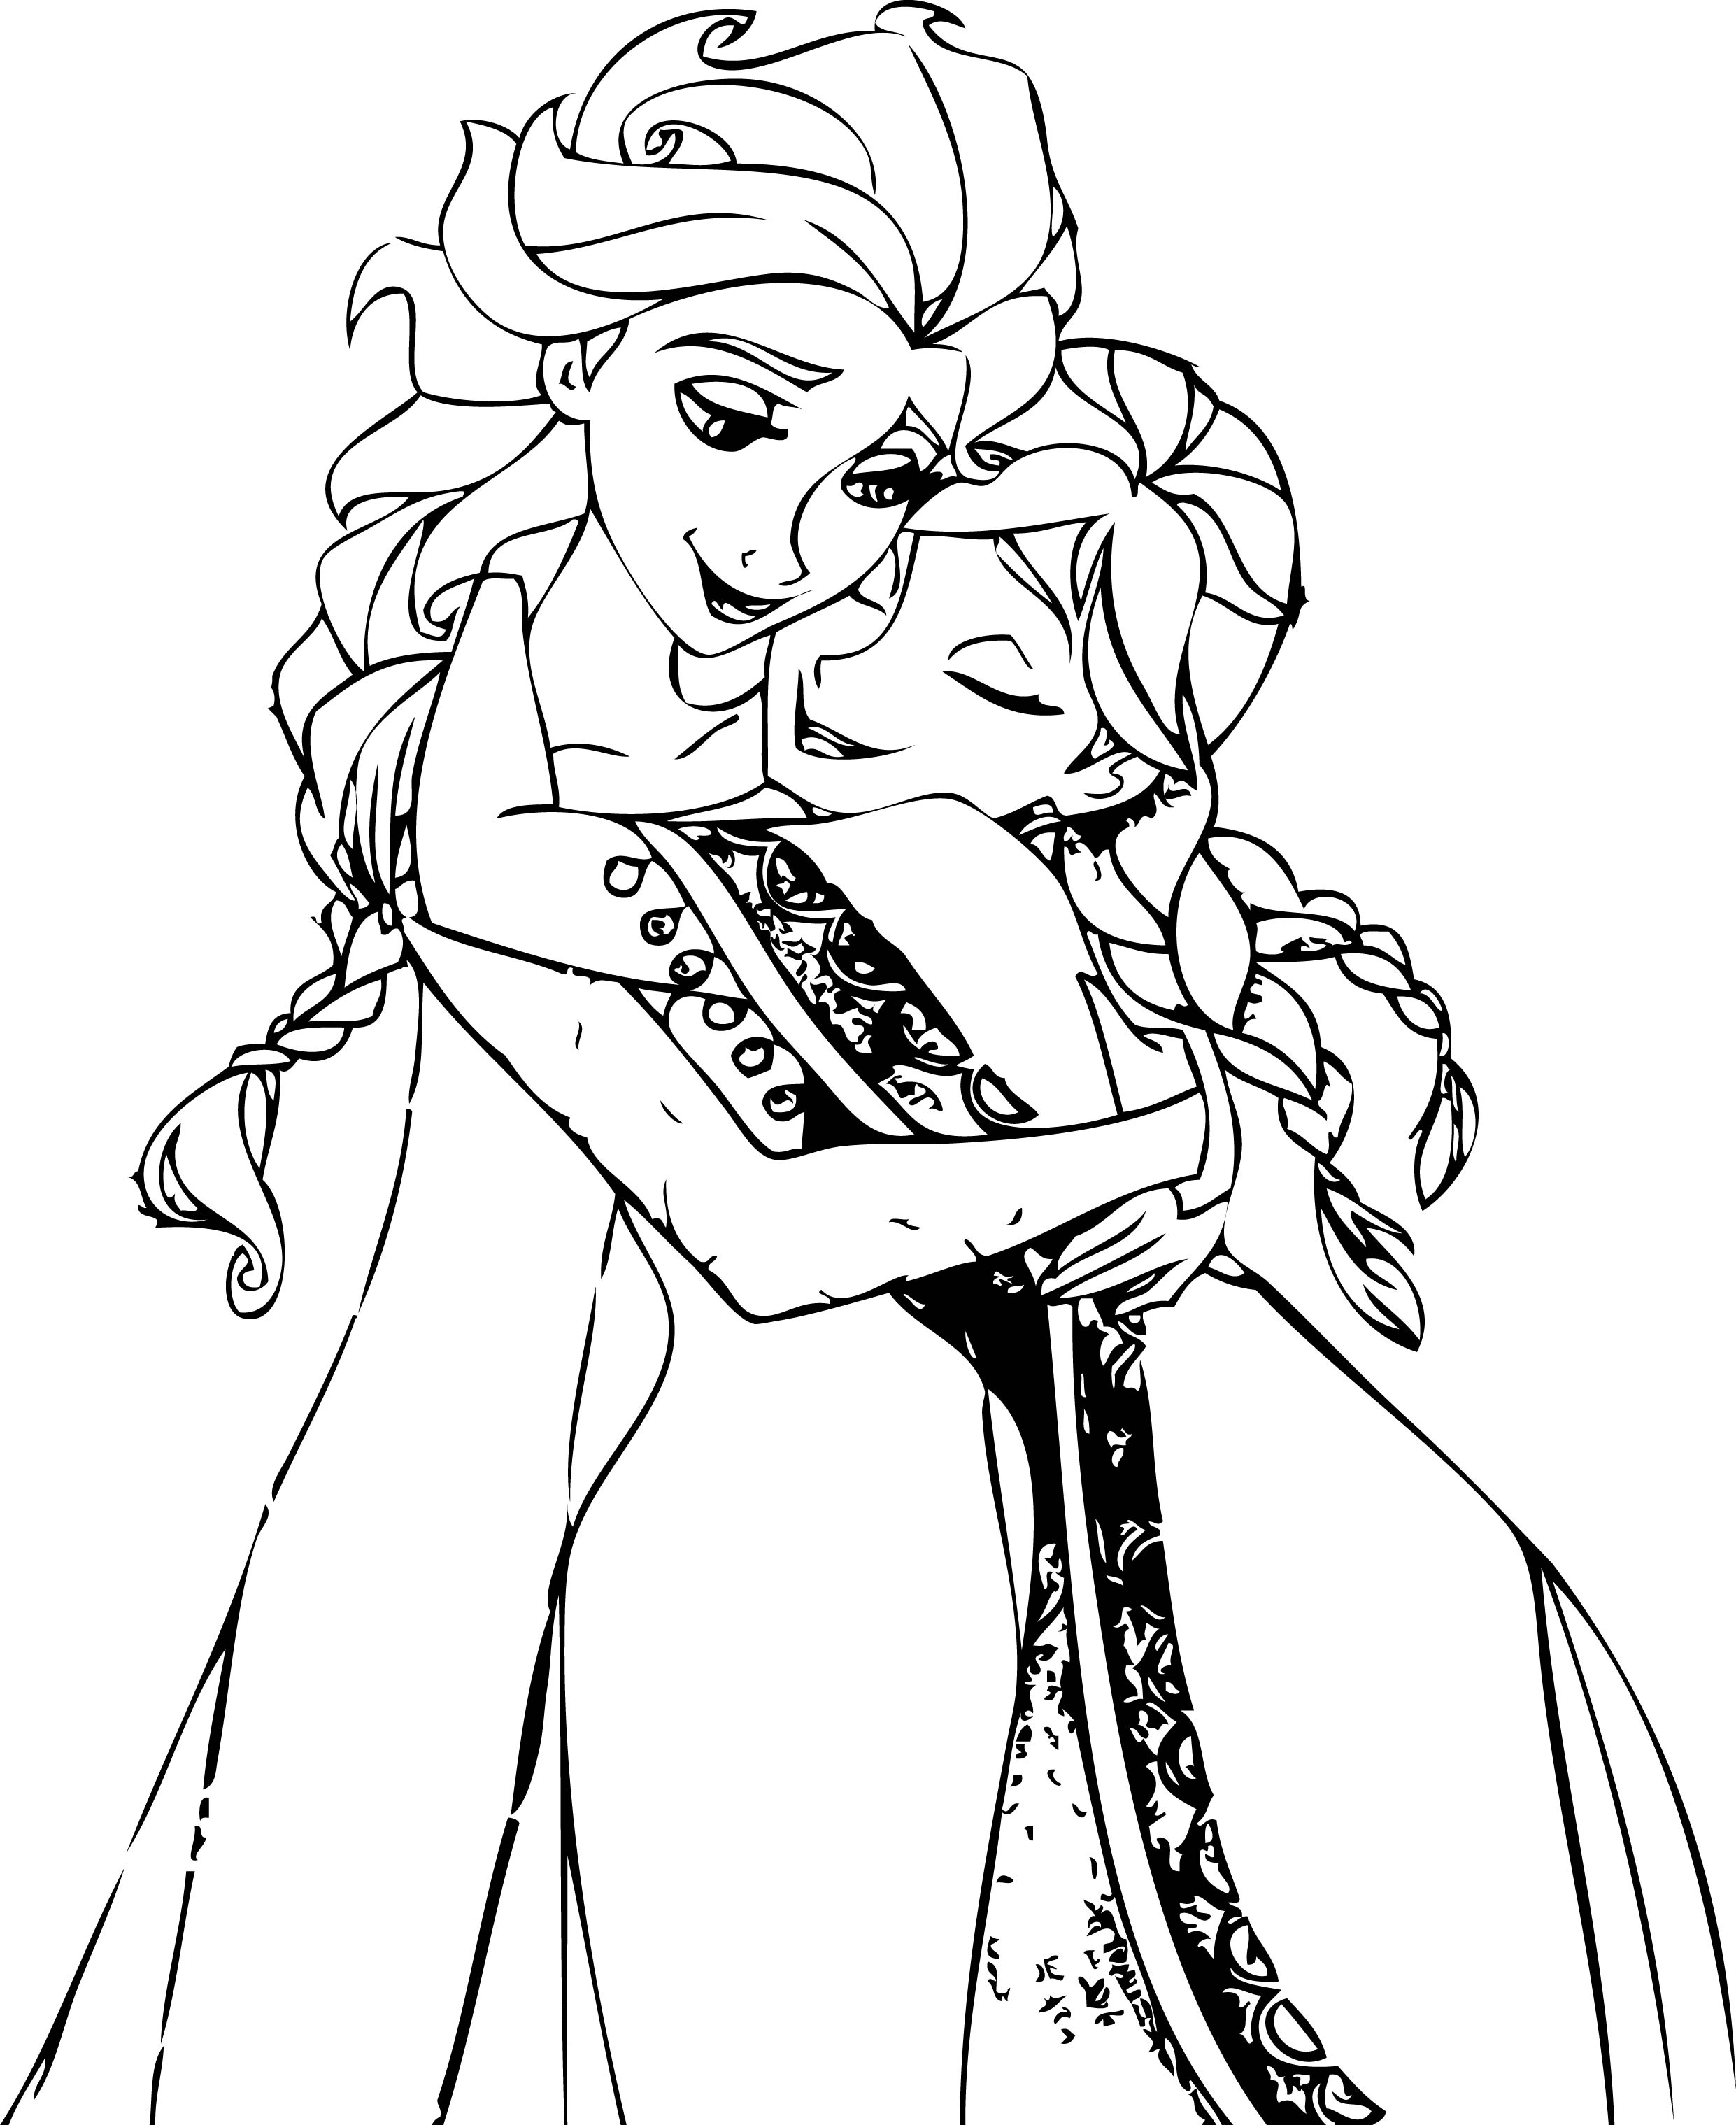 elsa letter e coloring pages - photo#17